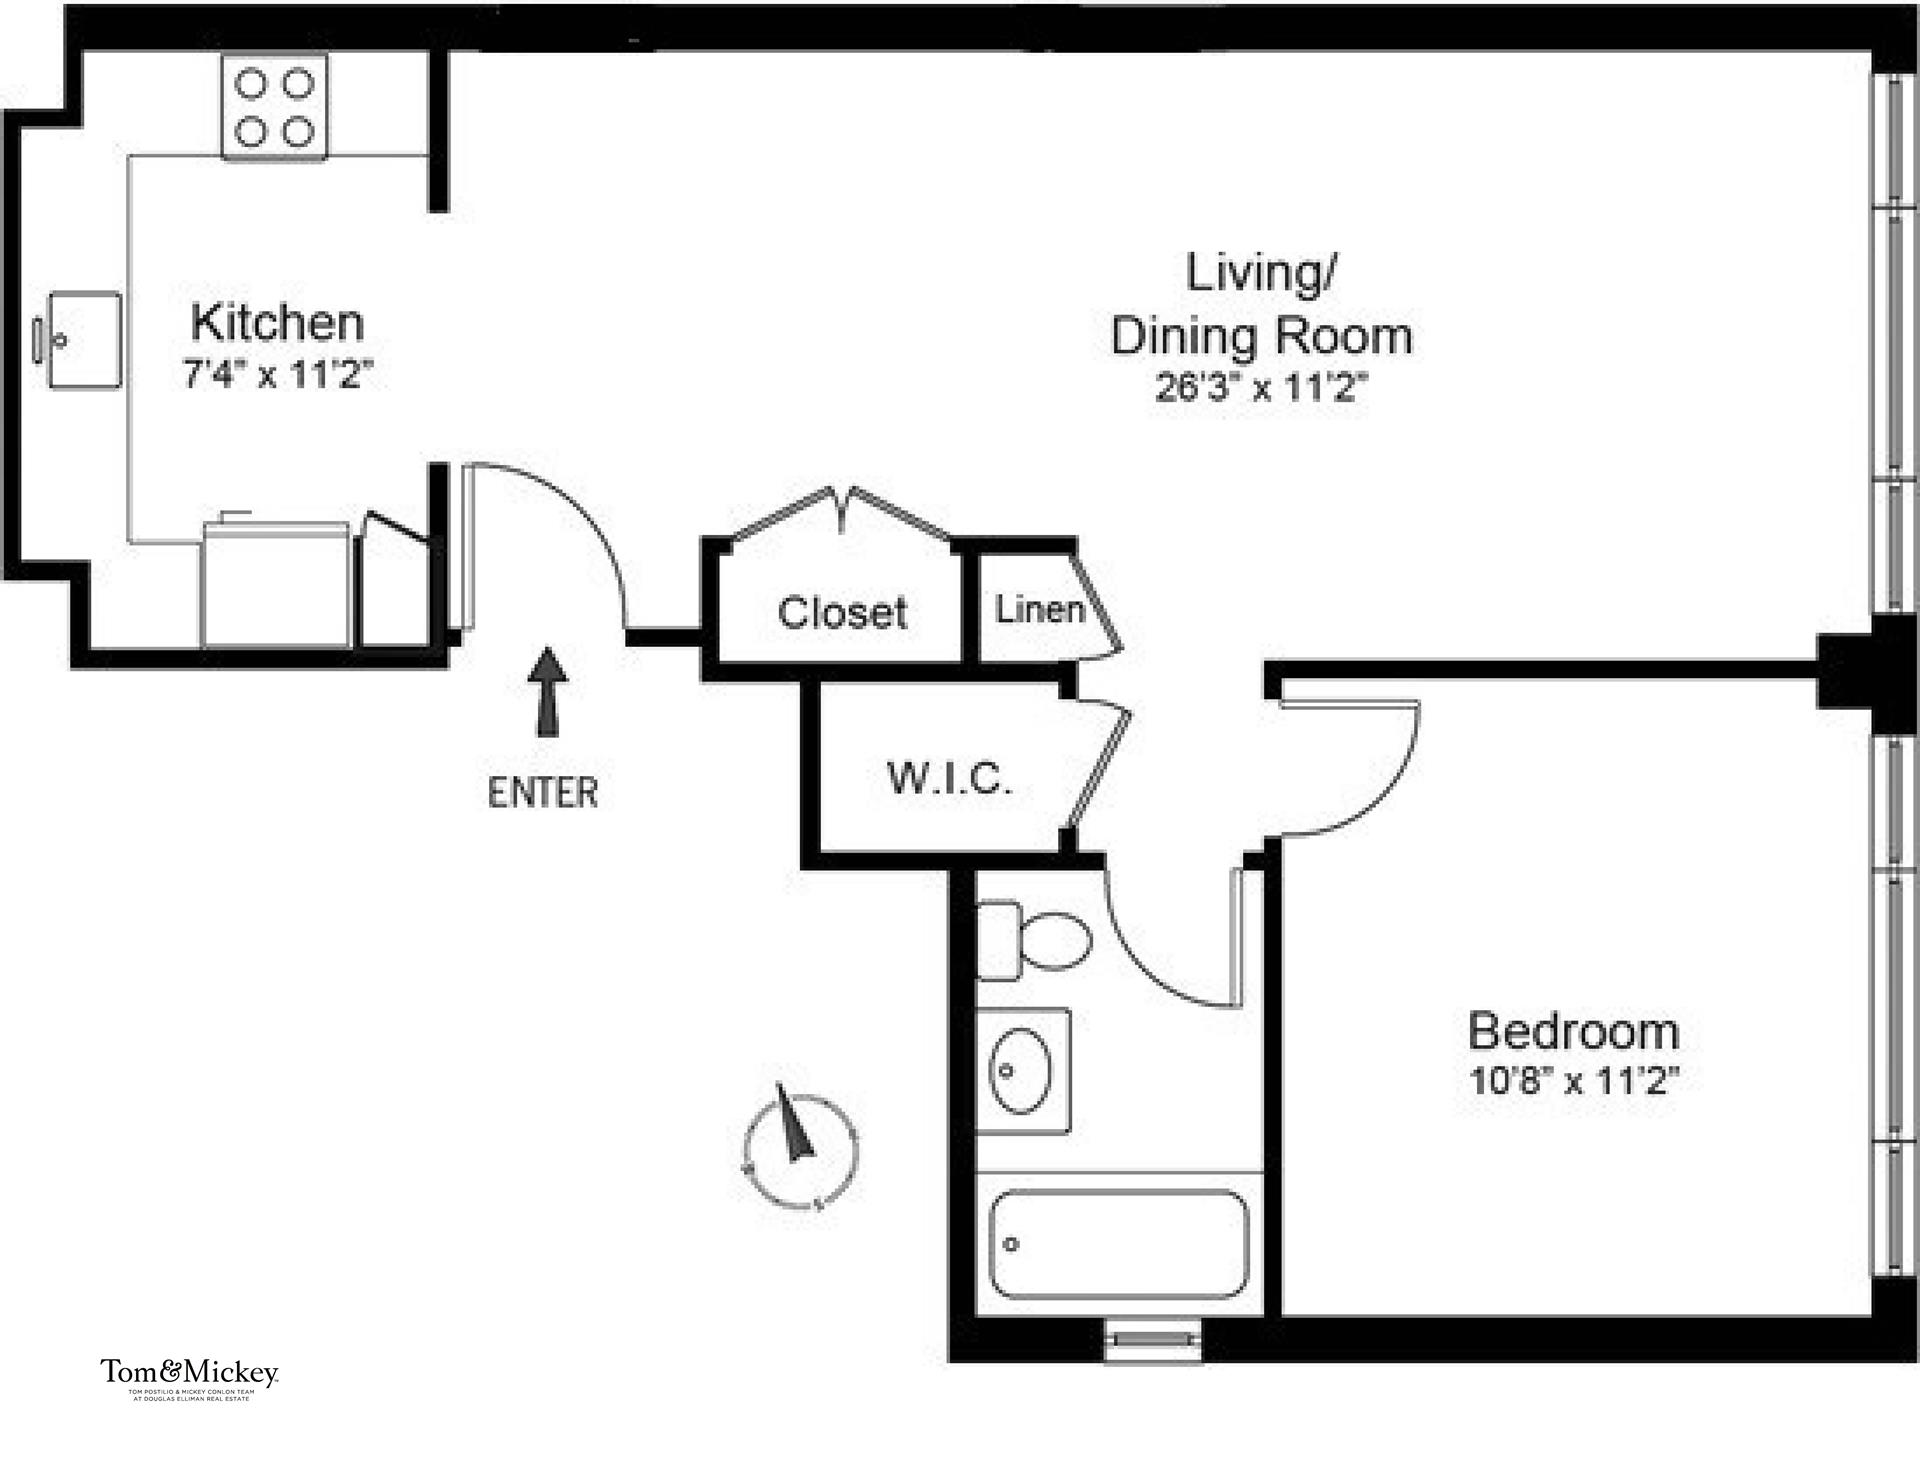 Floor plan of 845 Second Avenue, 3A - Turtle Bay, New York